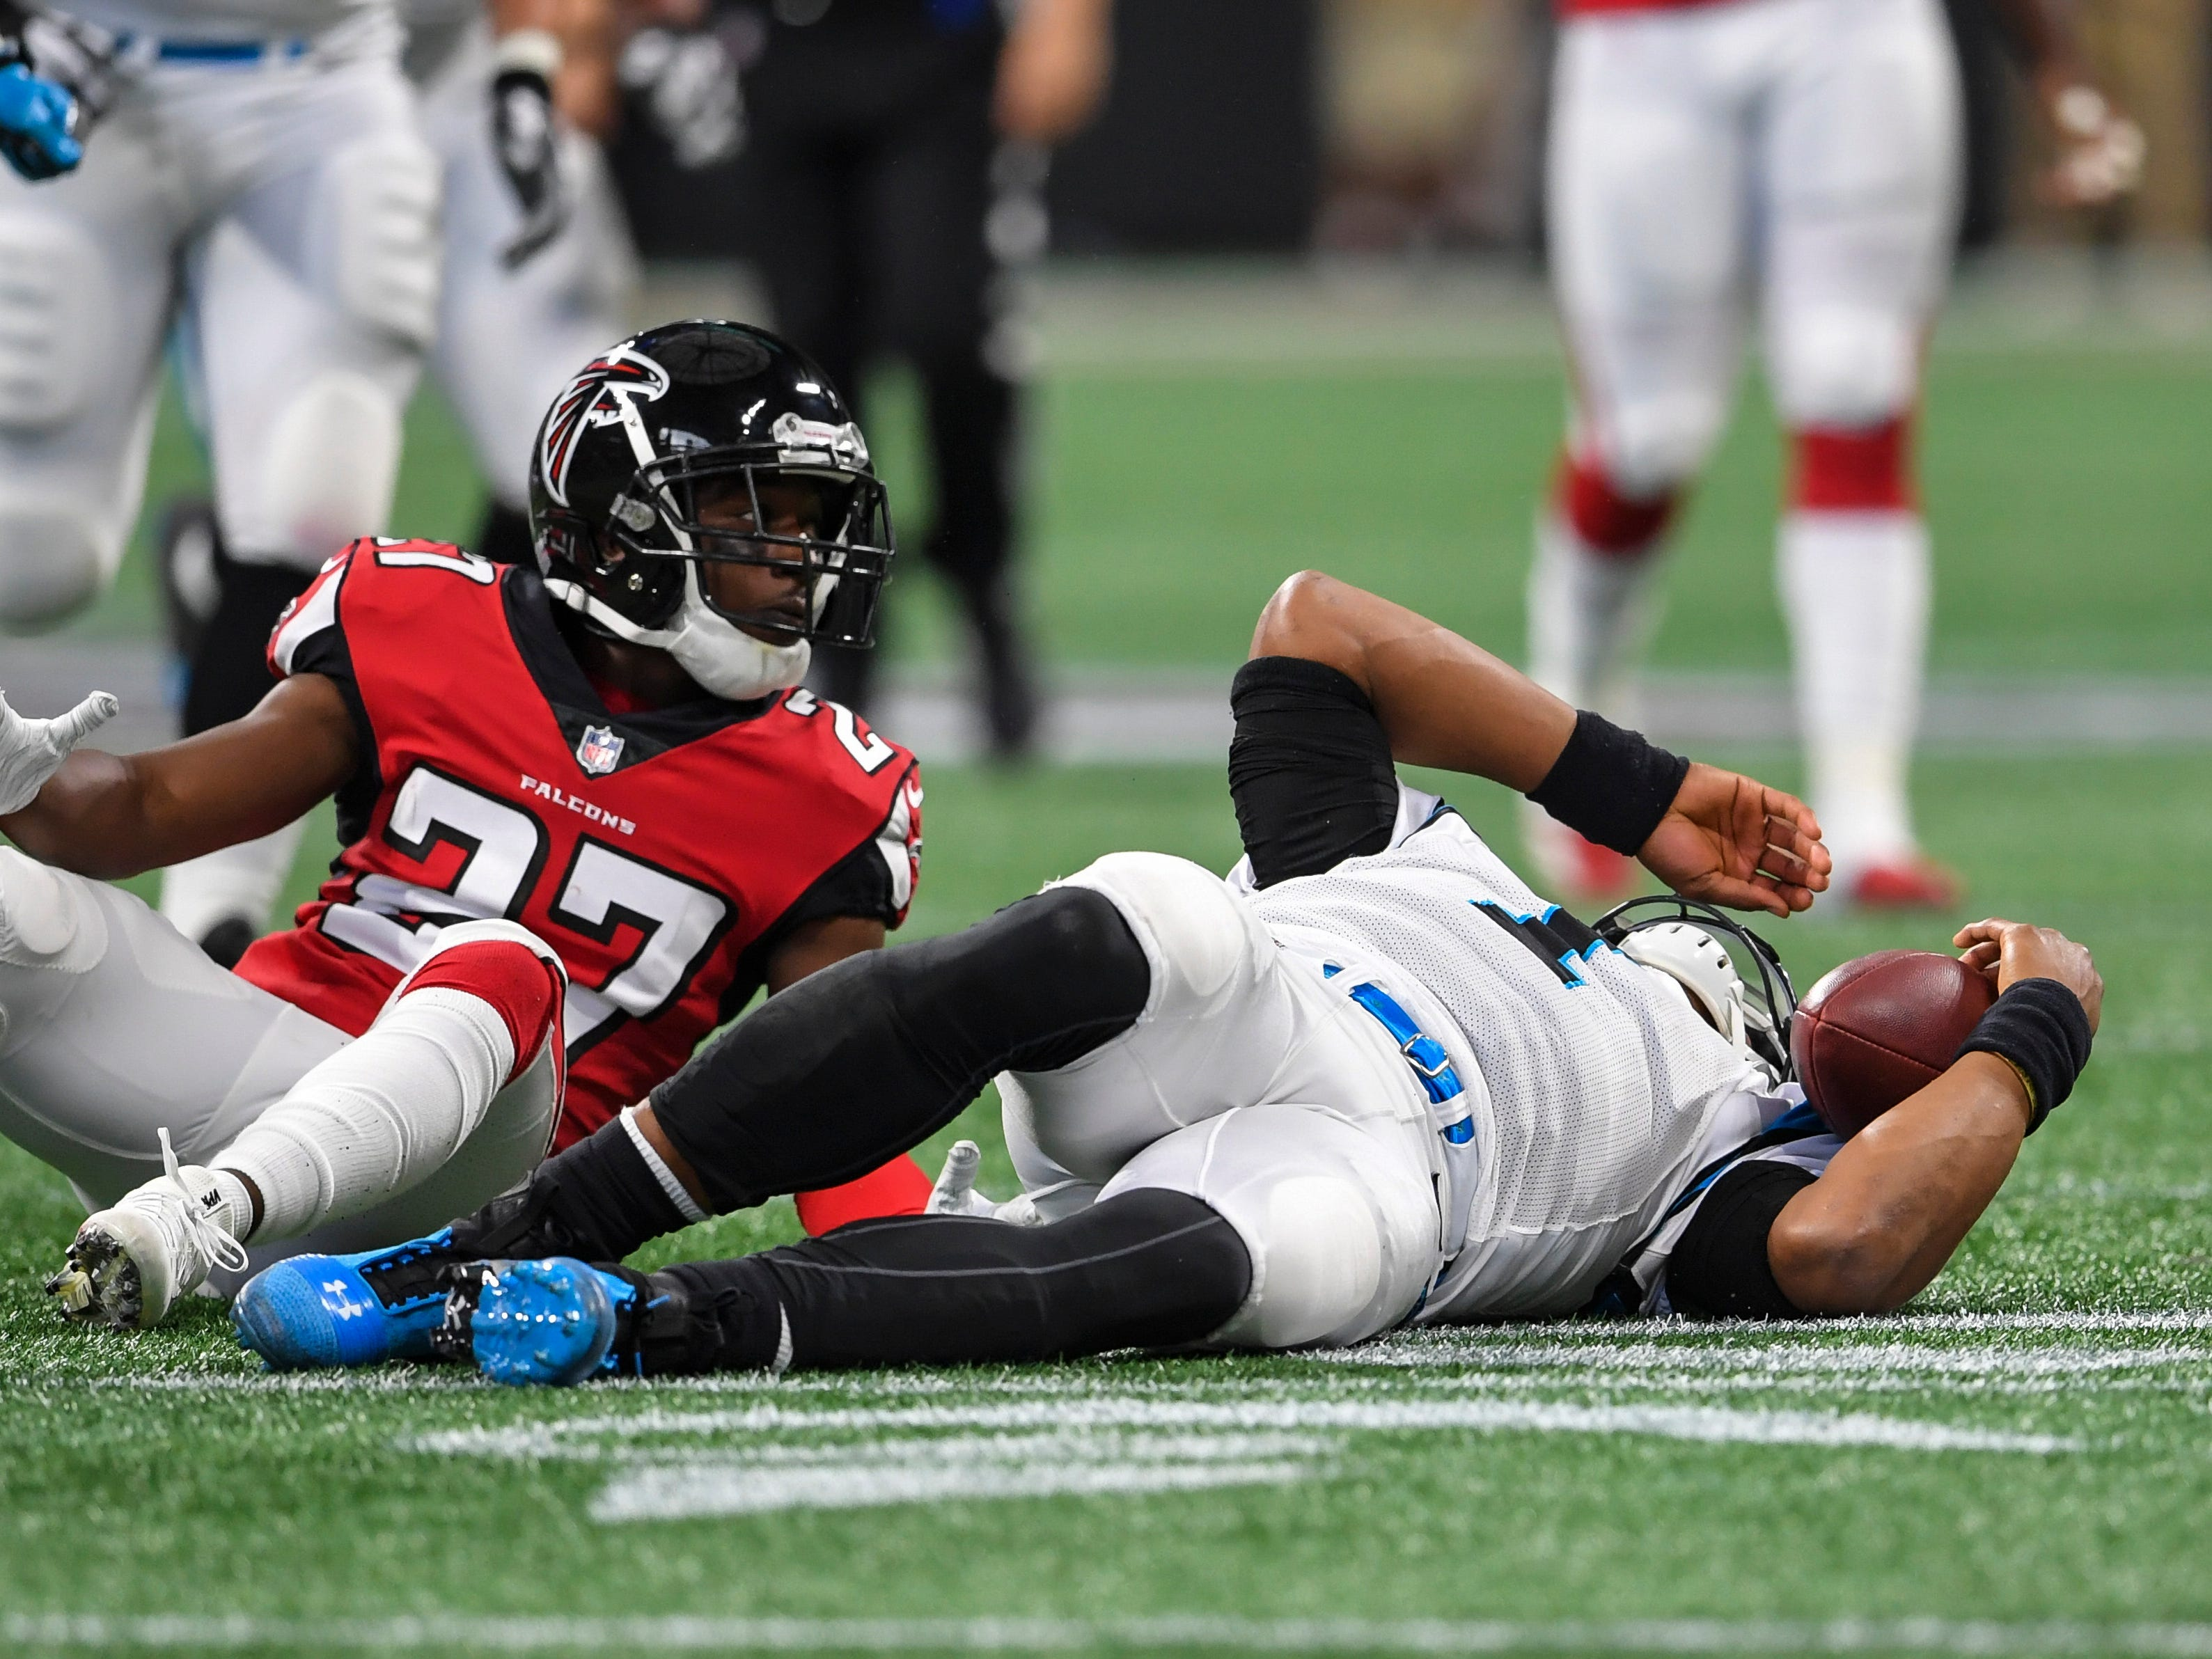 Carolina Panthers quarterback Cam Newton lays on the field after being hit in the head while sliding by Atlanta Falcons cornerback Damontae Kazee during the first half at Mercedes-Benz Stadium. Kazee was ejected for the hit.